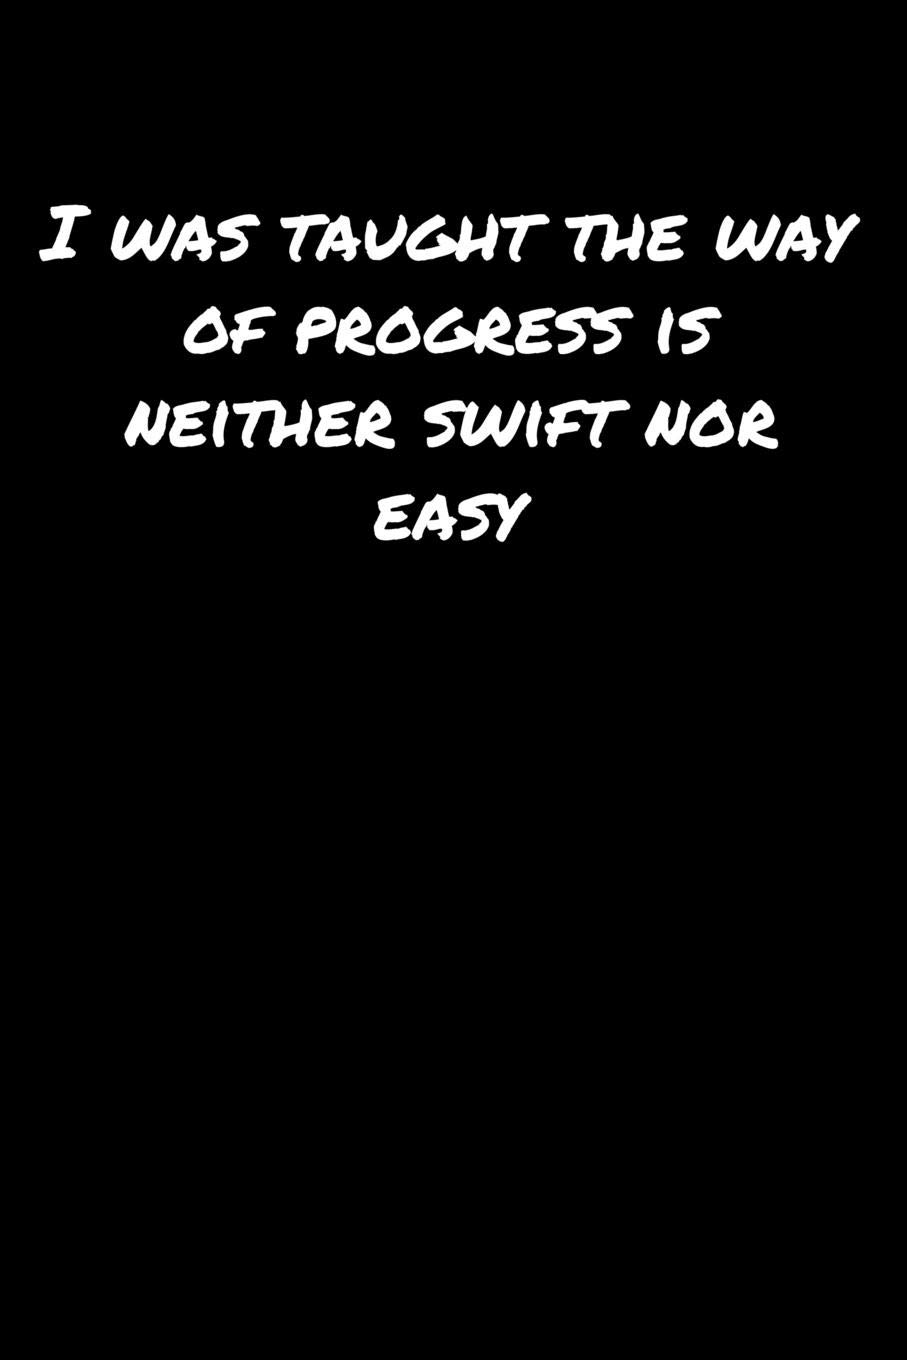 I Was Taught The Way Of Progress Is Neither Swift Nor Easy